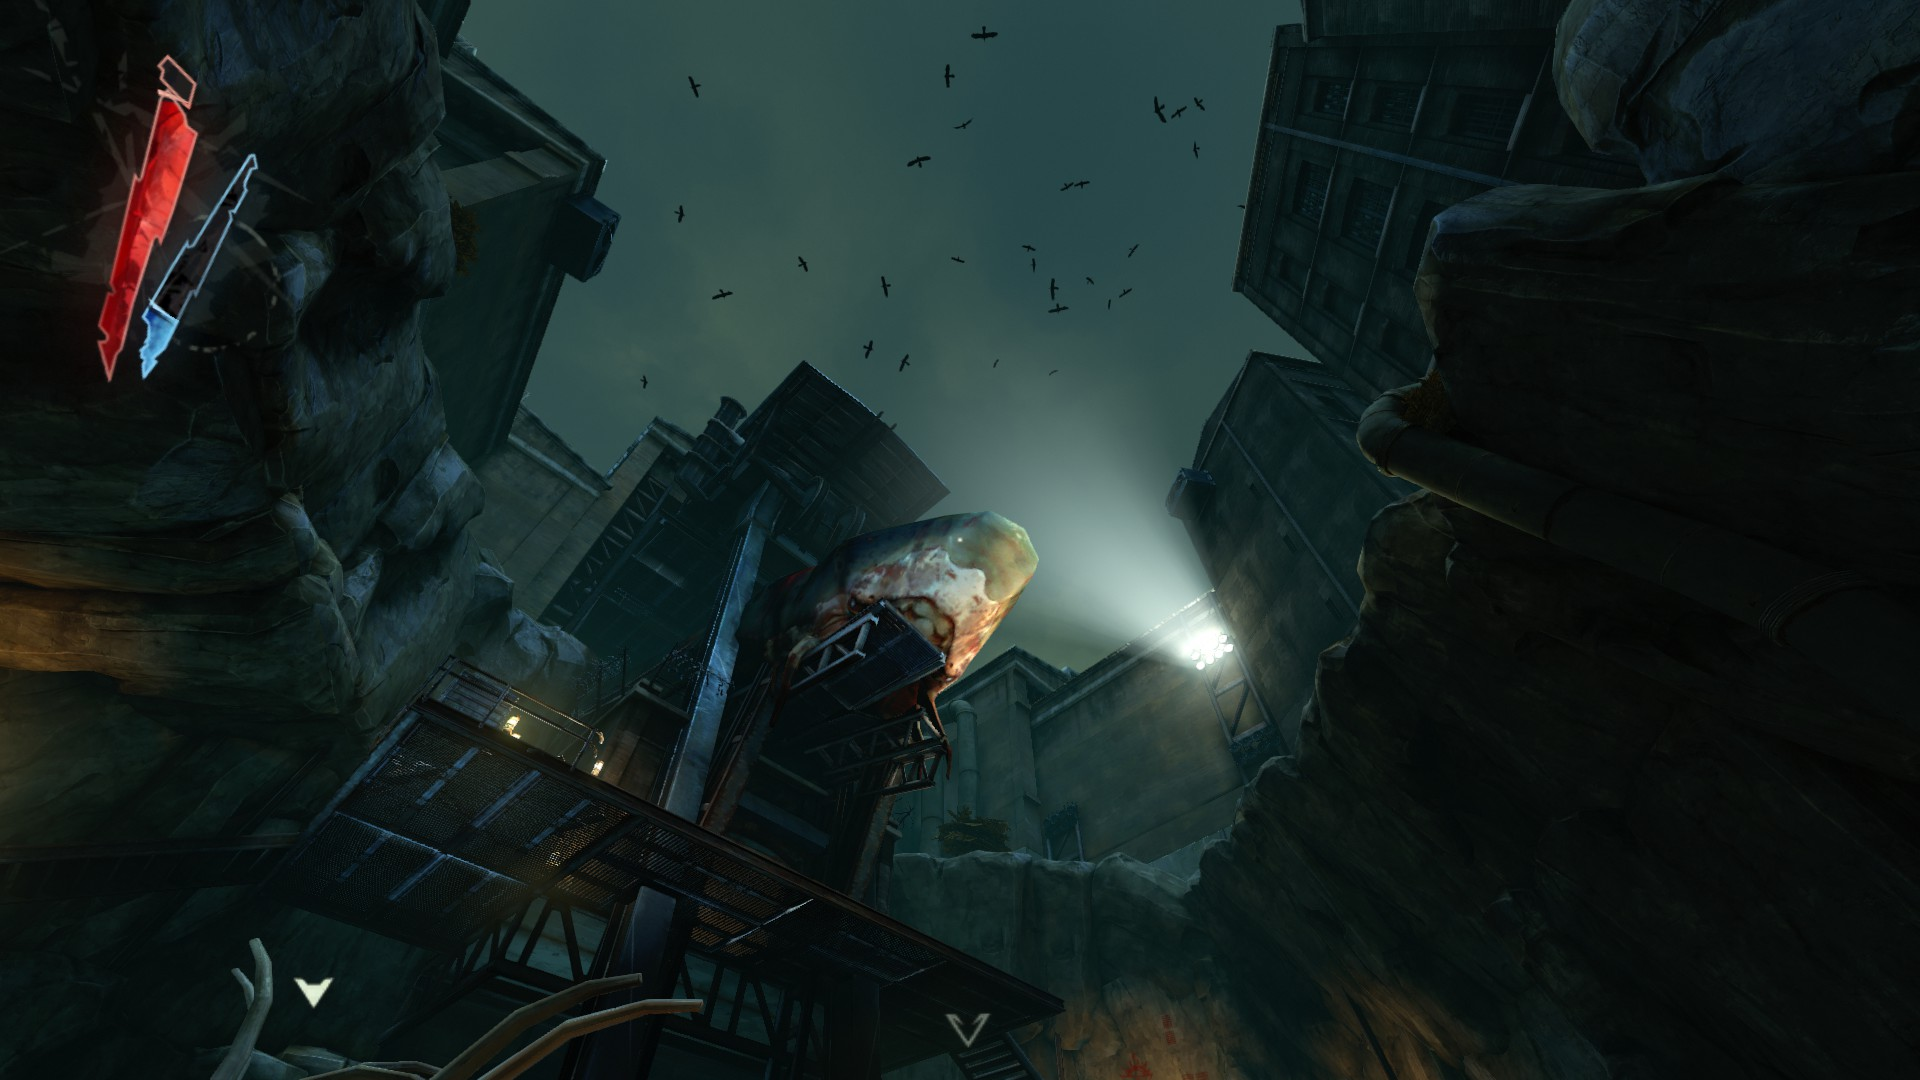 A huge whale corpse high above in a dark city.